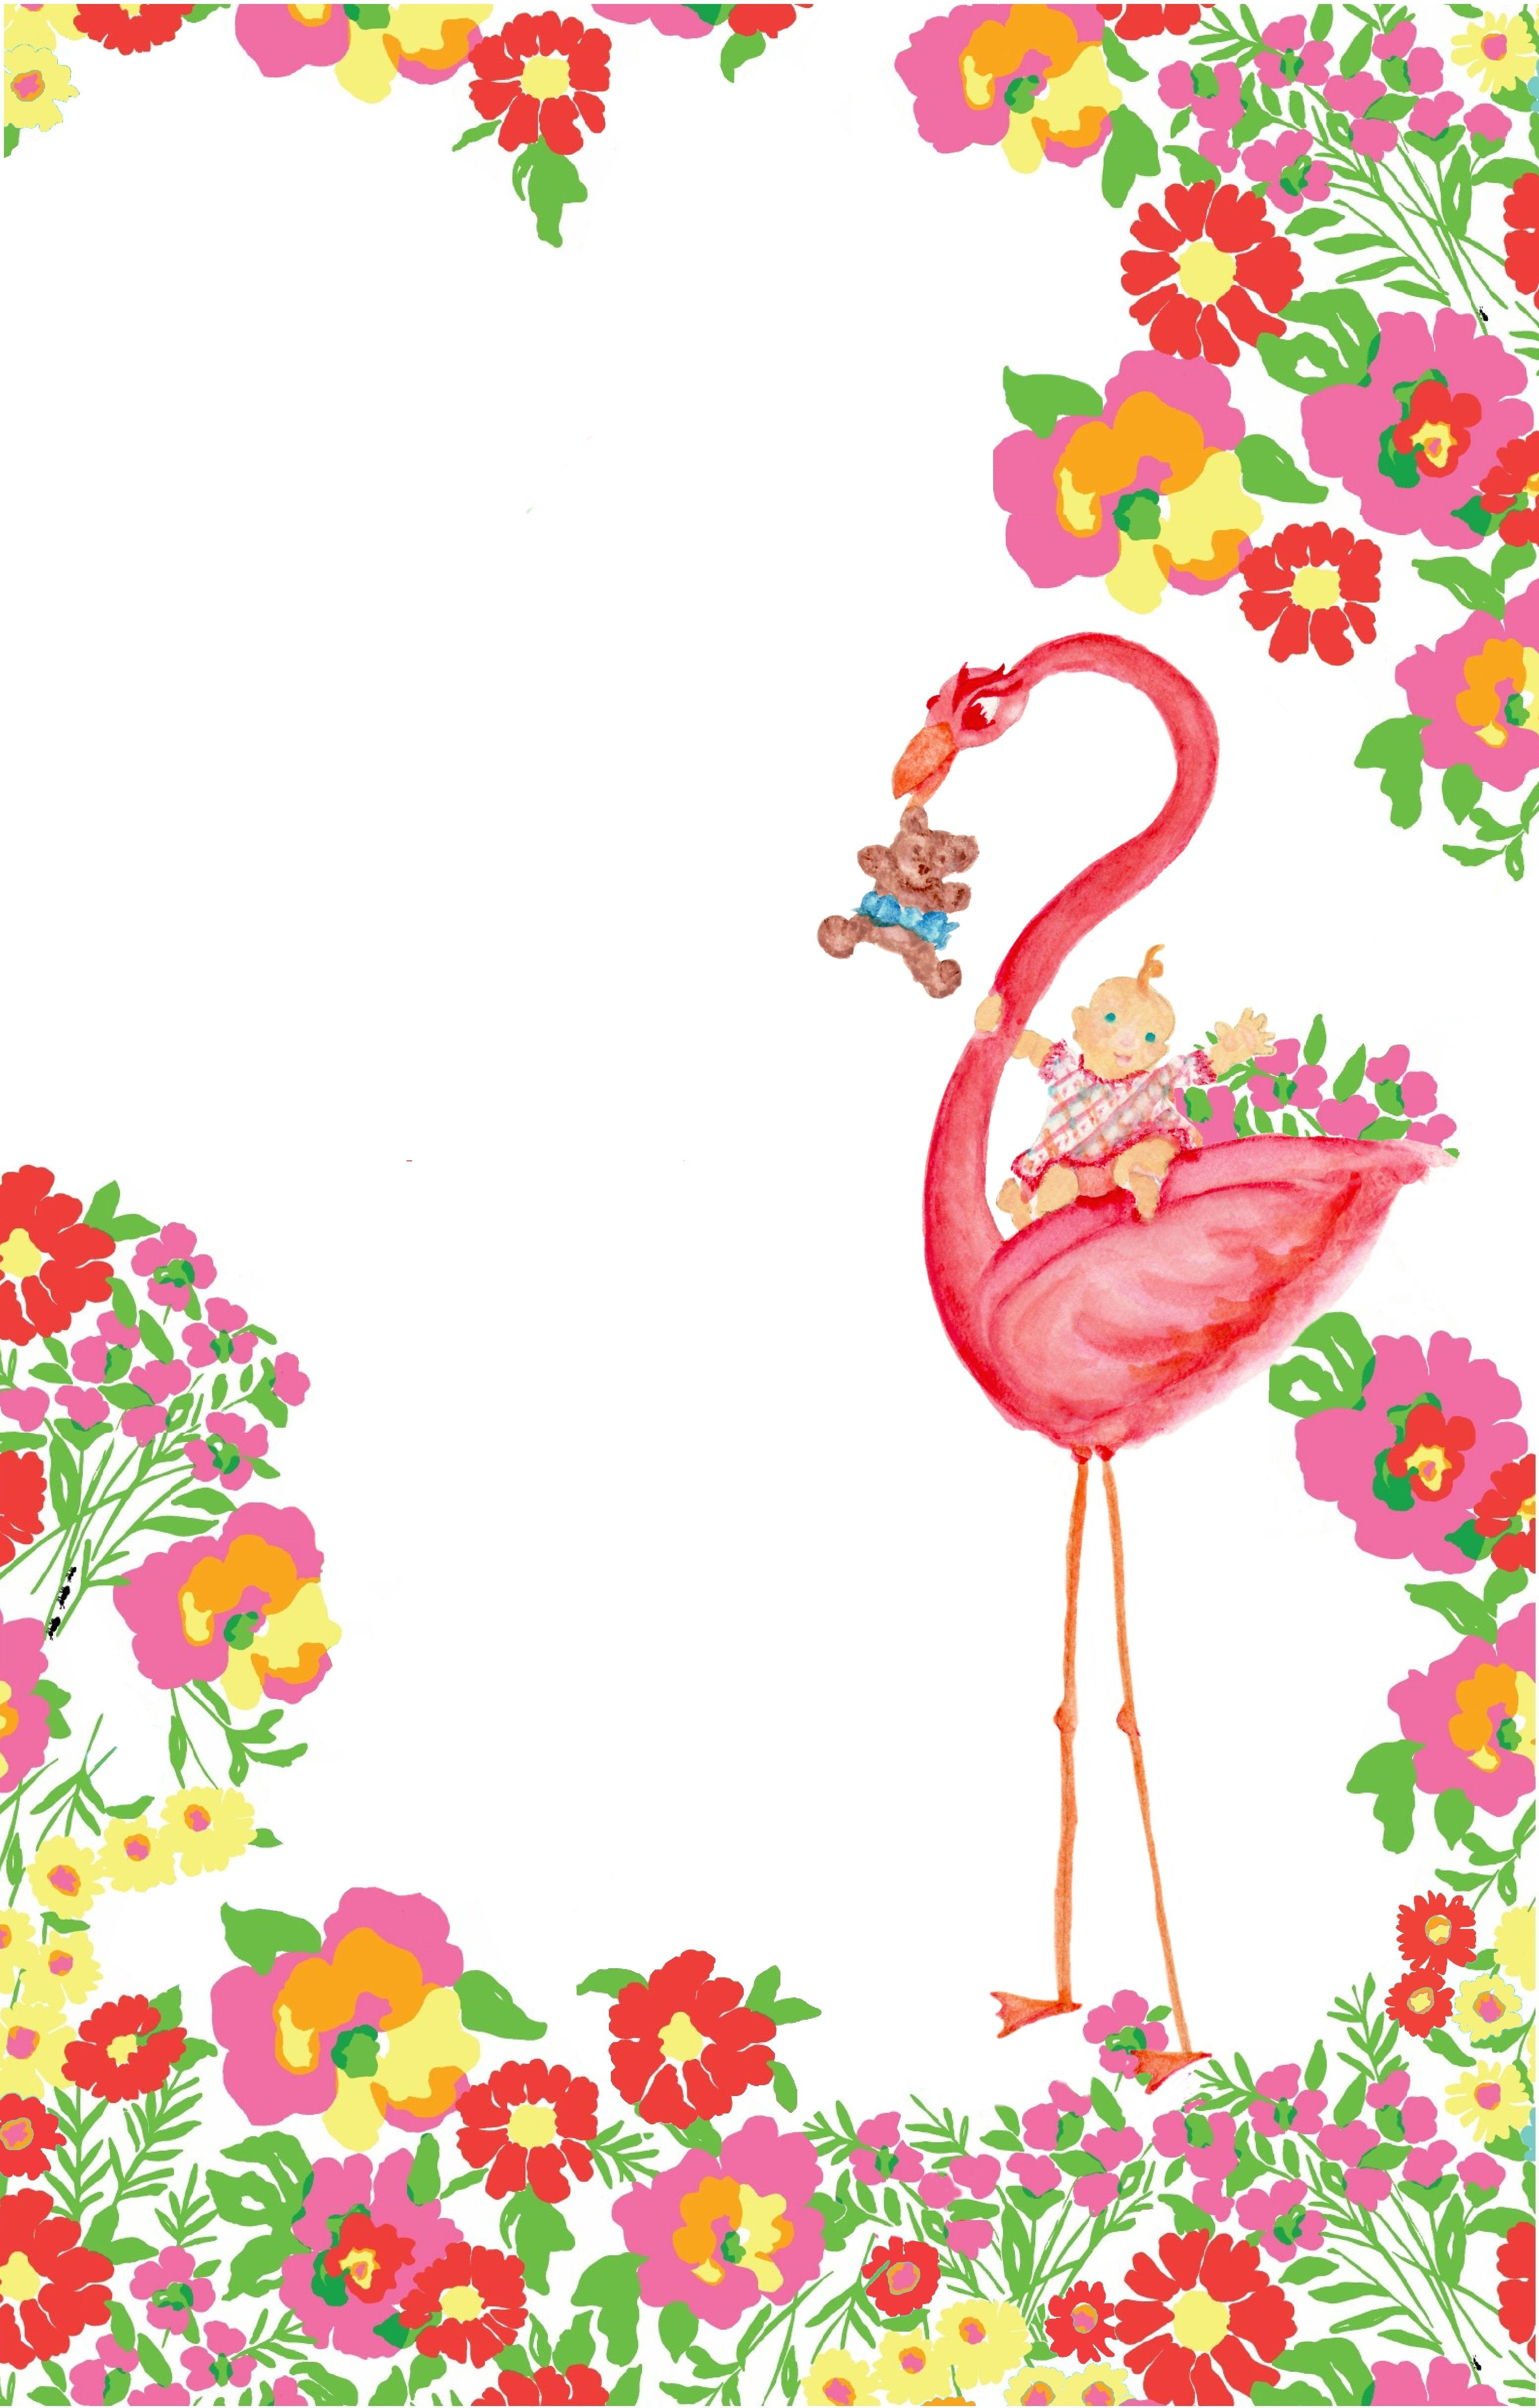 My Baby Shower Invitation Design Watercolor Flamingo With A Lily Pulitzer Summer Fl Print